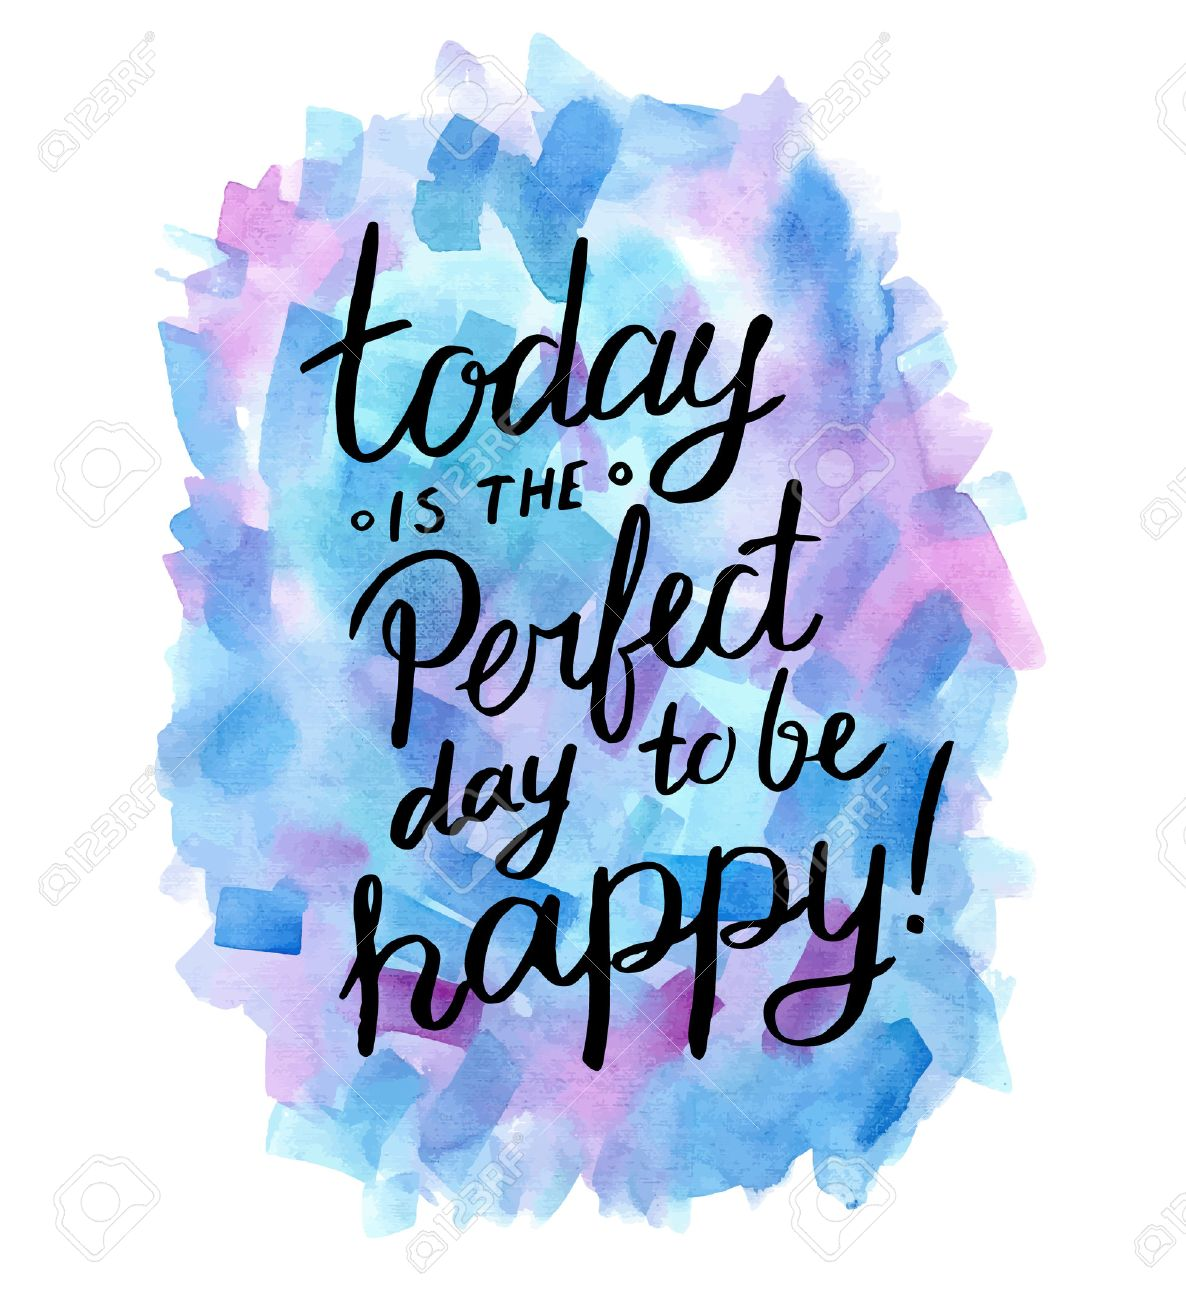 Today is the perfect day to be happy! Inspiration hand drawn quote. - 41723951